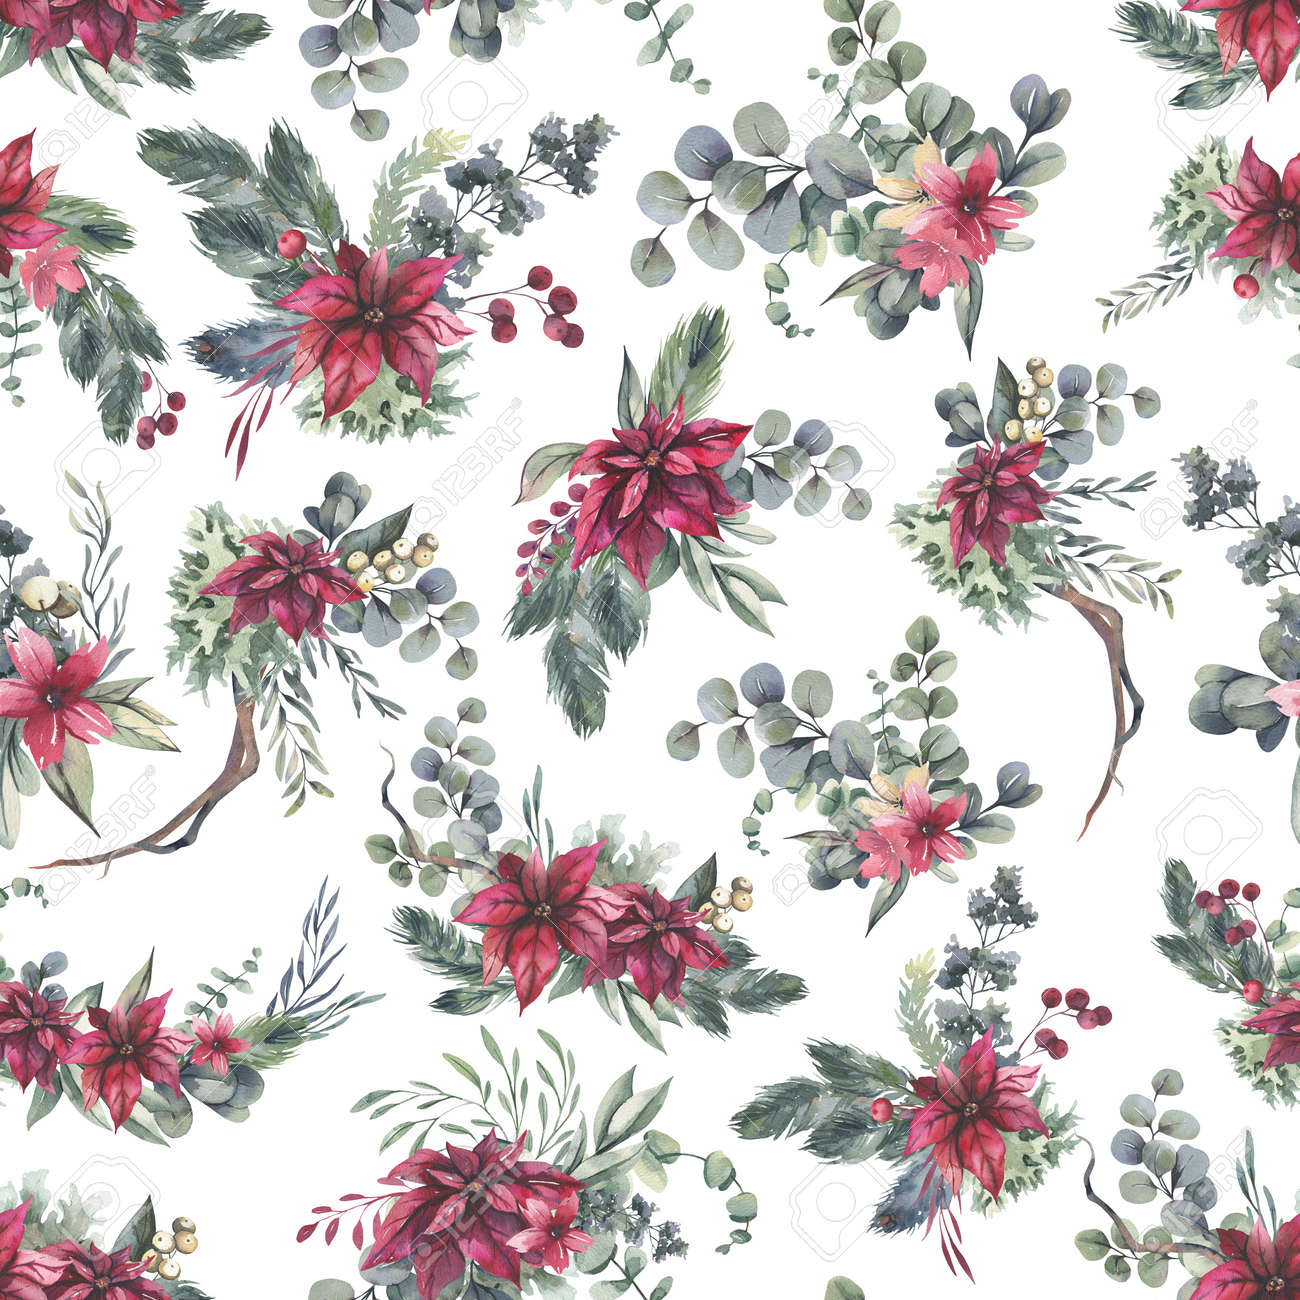 Watercolor floral pattern with different leaves and flowers. Floral seamless pattern on black background. High quality illustration - 156125634